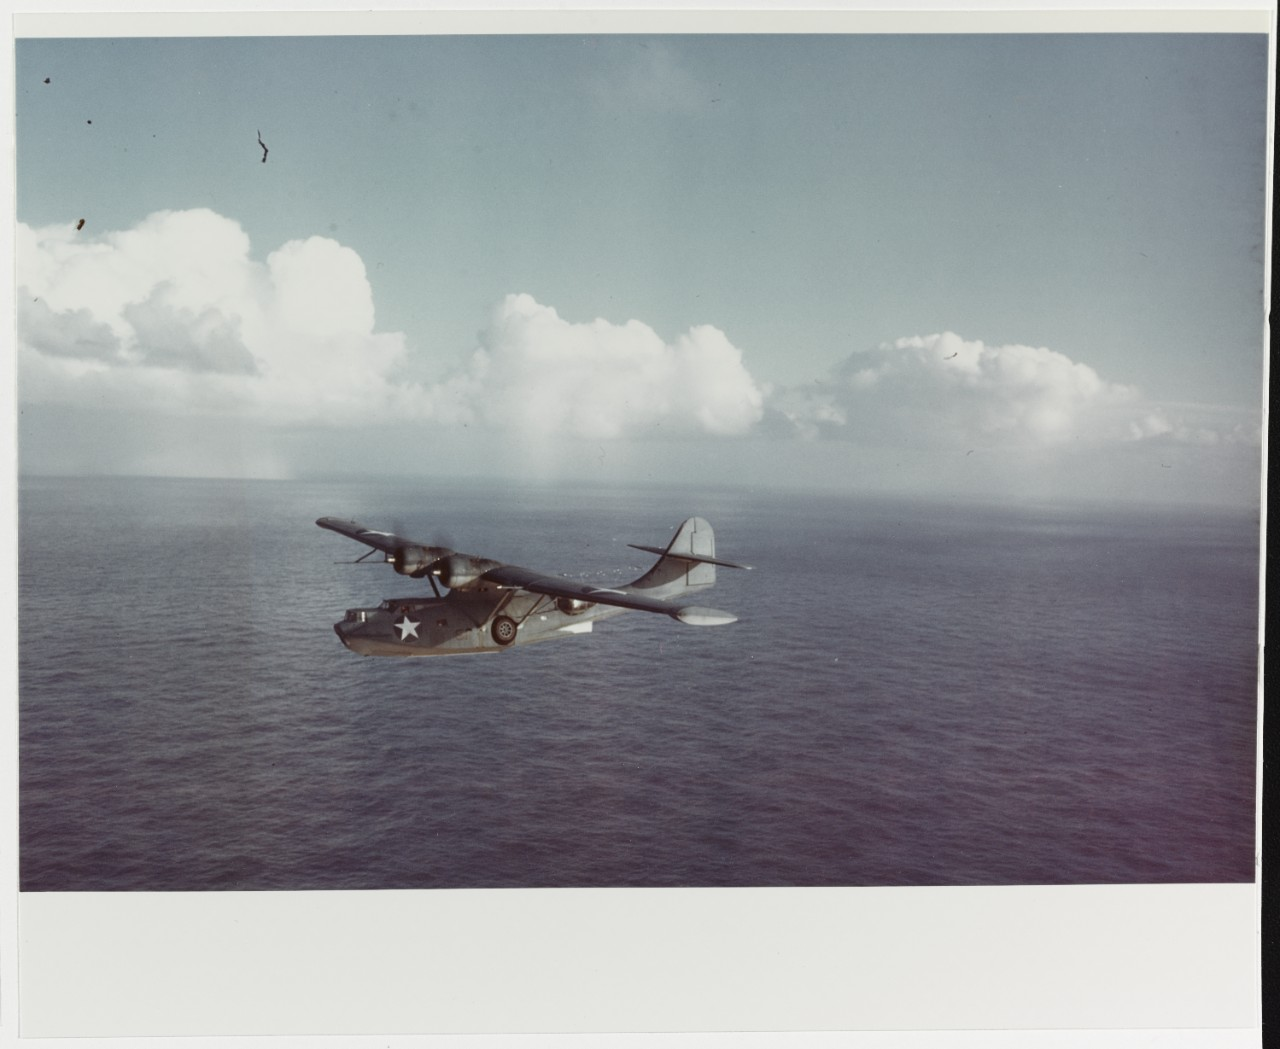 Consolidated PBY -3 CATALINA patrol bomber